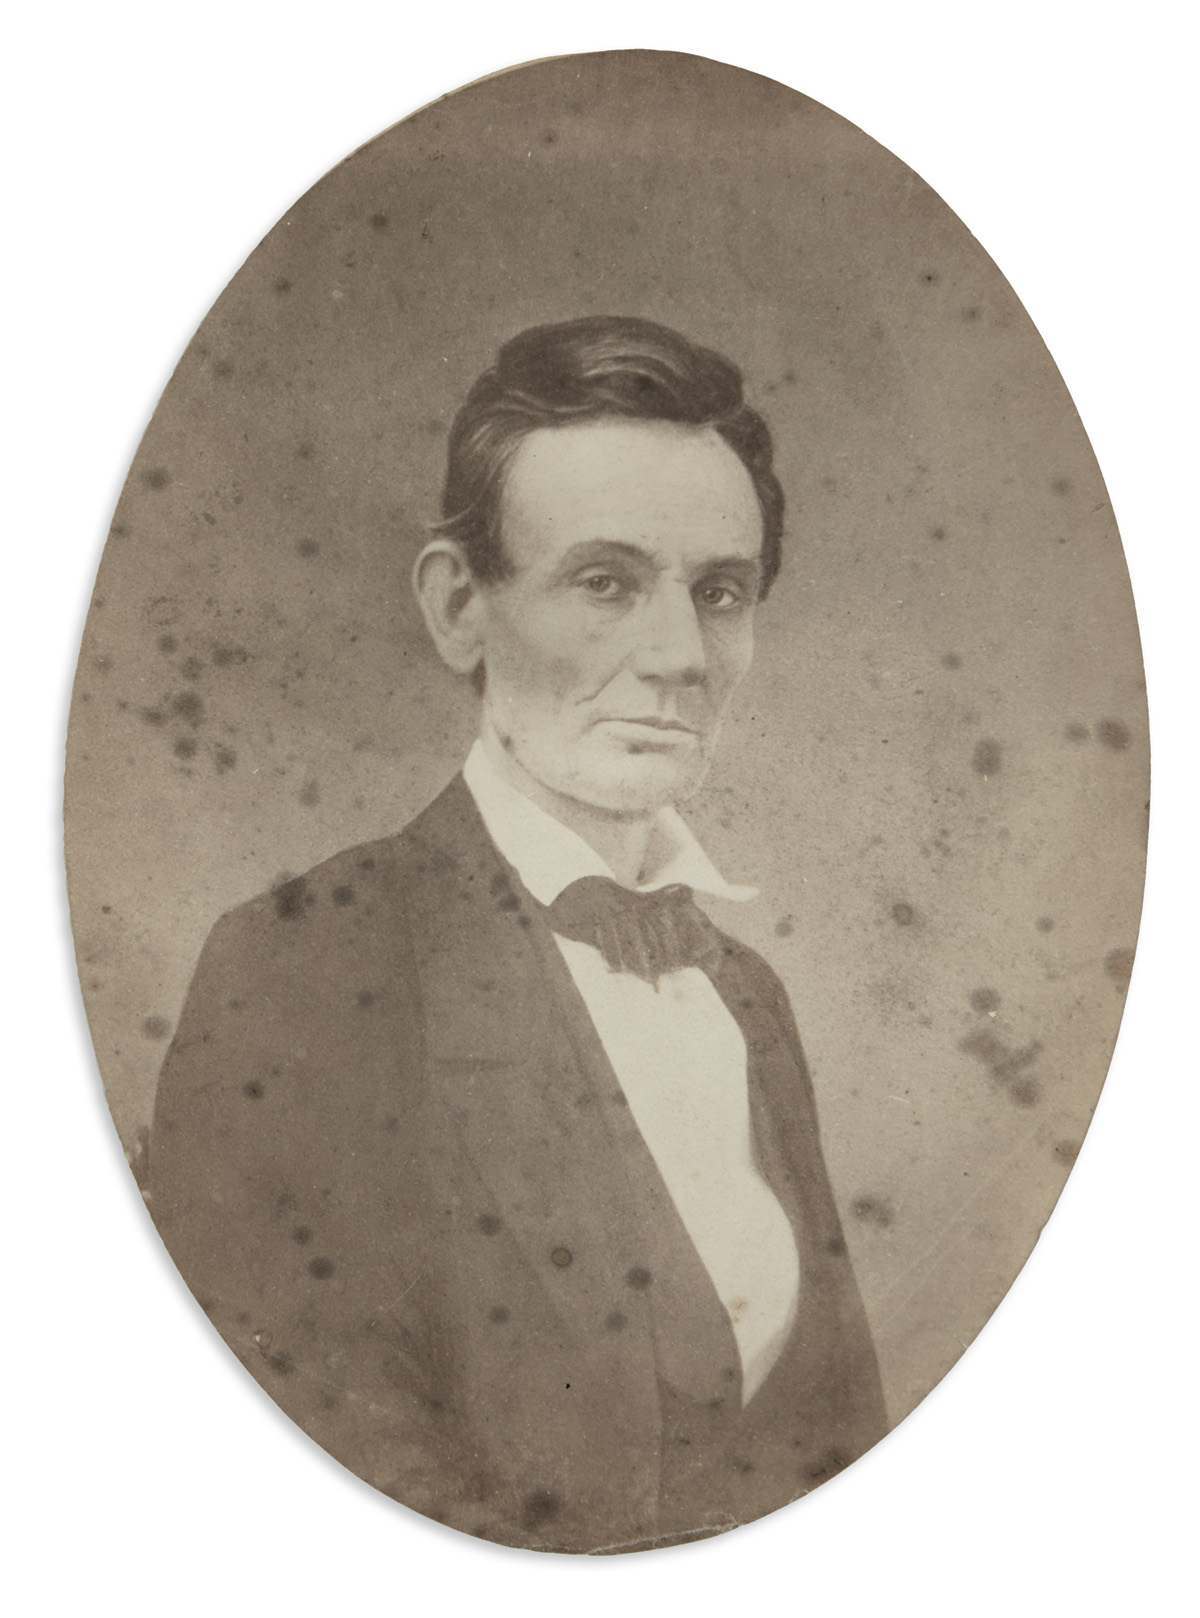 (LINCOLN, ABRAHAM.) Fassett, Samuel M. Early portrait of Lincoln from a few months before his presidential campaign.